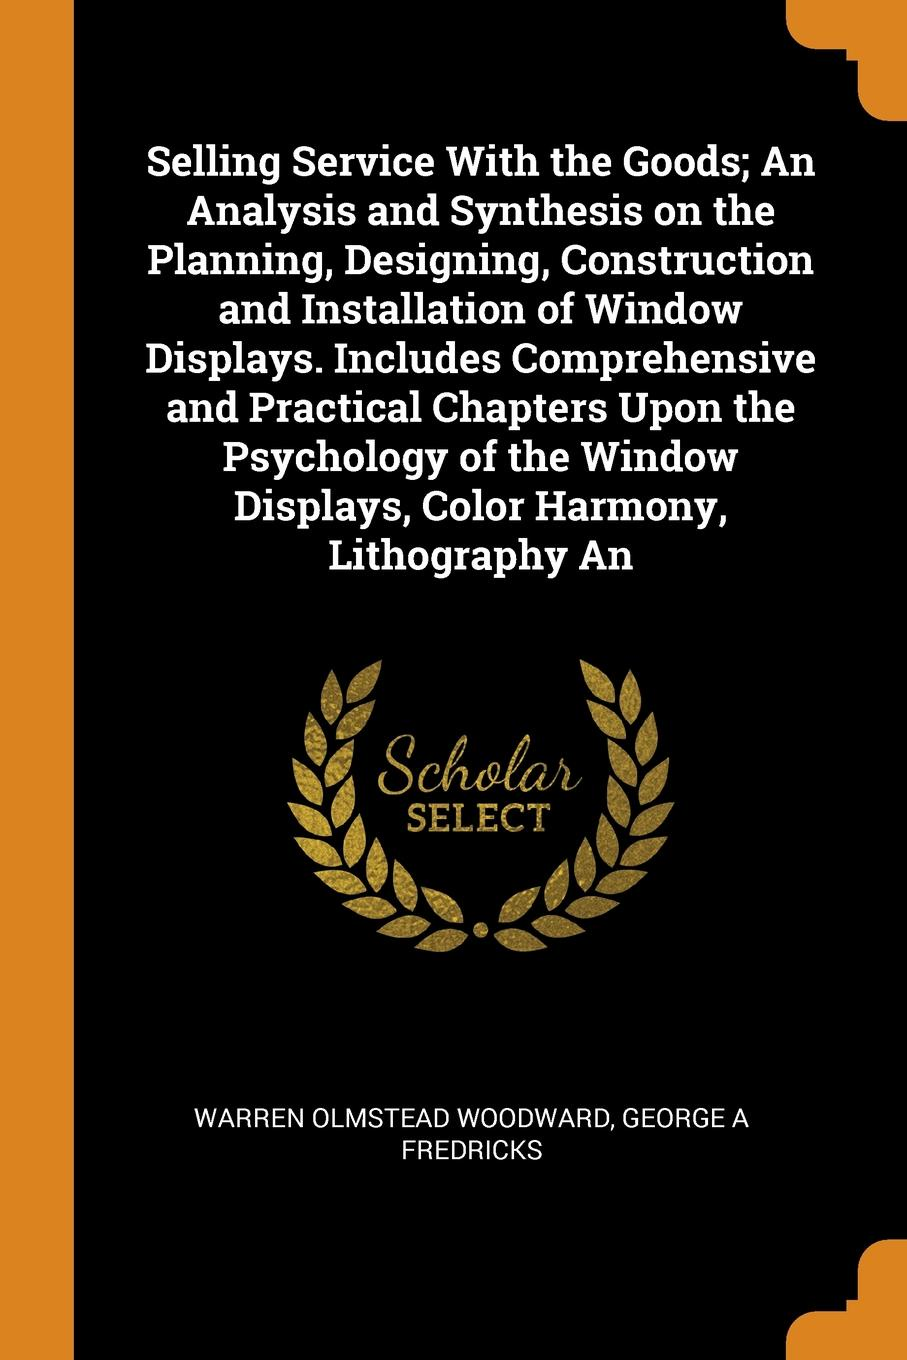 Warren Olmstead Woodward, George A Fredricks Selling Service With the Goods; An Analysis and Synthesis on the Planning, Designing, Construction and Installation of Window Displays. Includes Comprehensive and Practical Chapters Upon the Psychology of the Window Displays, Color Harmony, Lithog... the number of displays with intelligent control electronics equipment work points counter